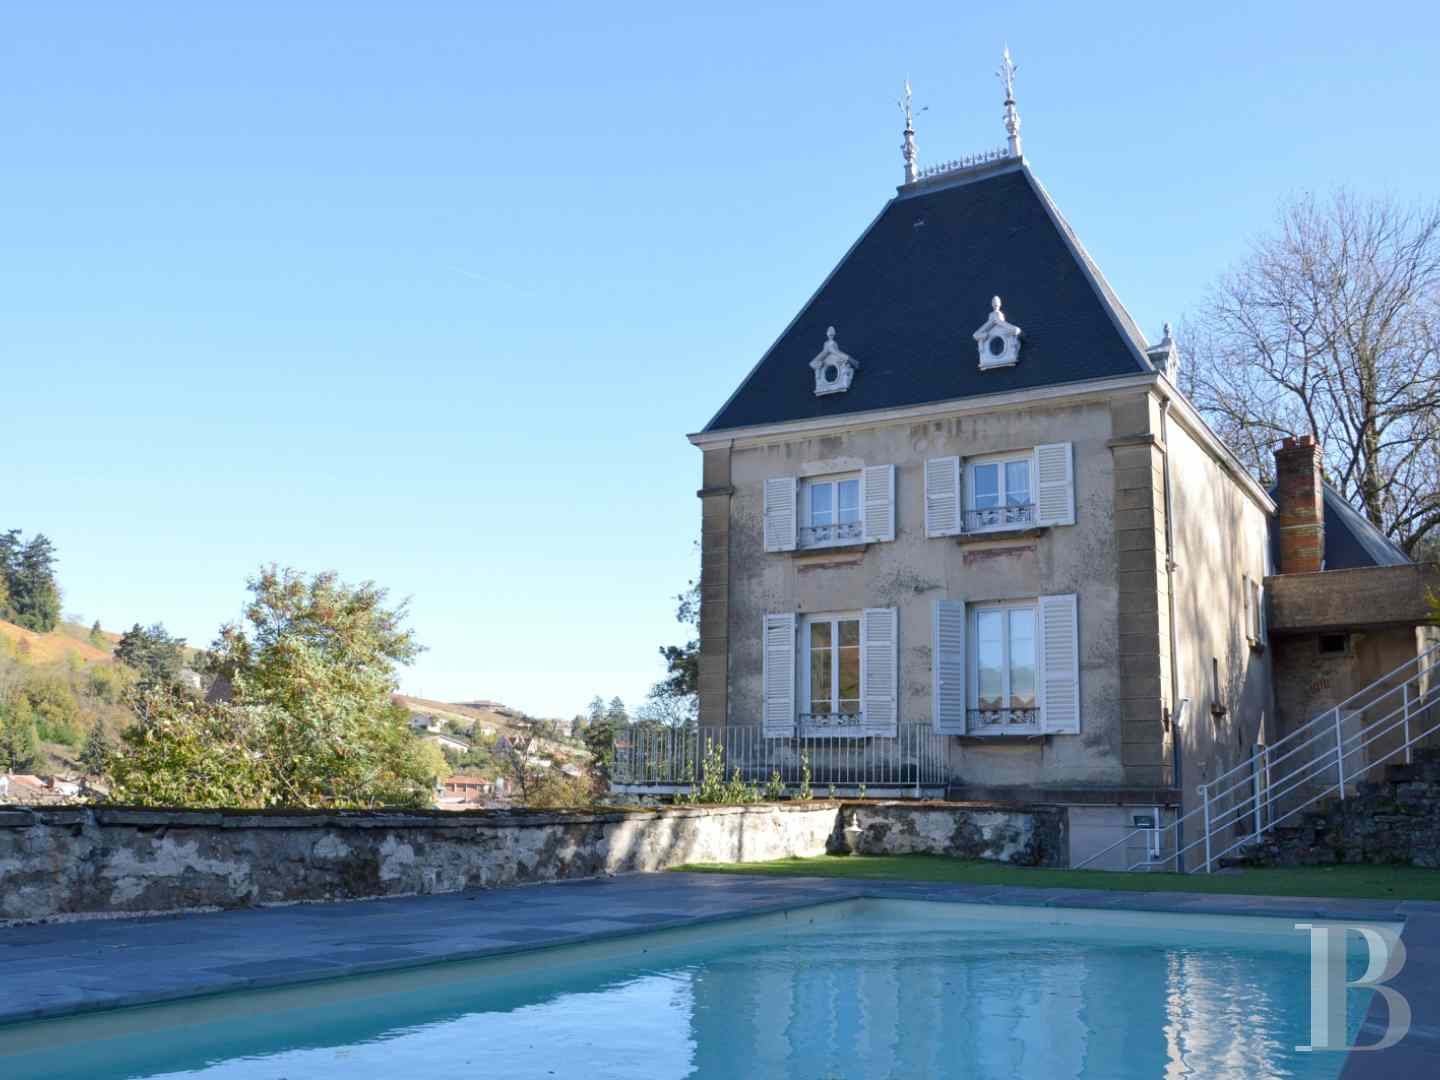 property for sale France rhones alps residence beaujolais - 2 zoom